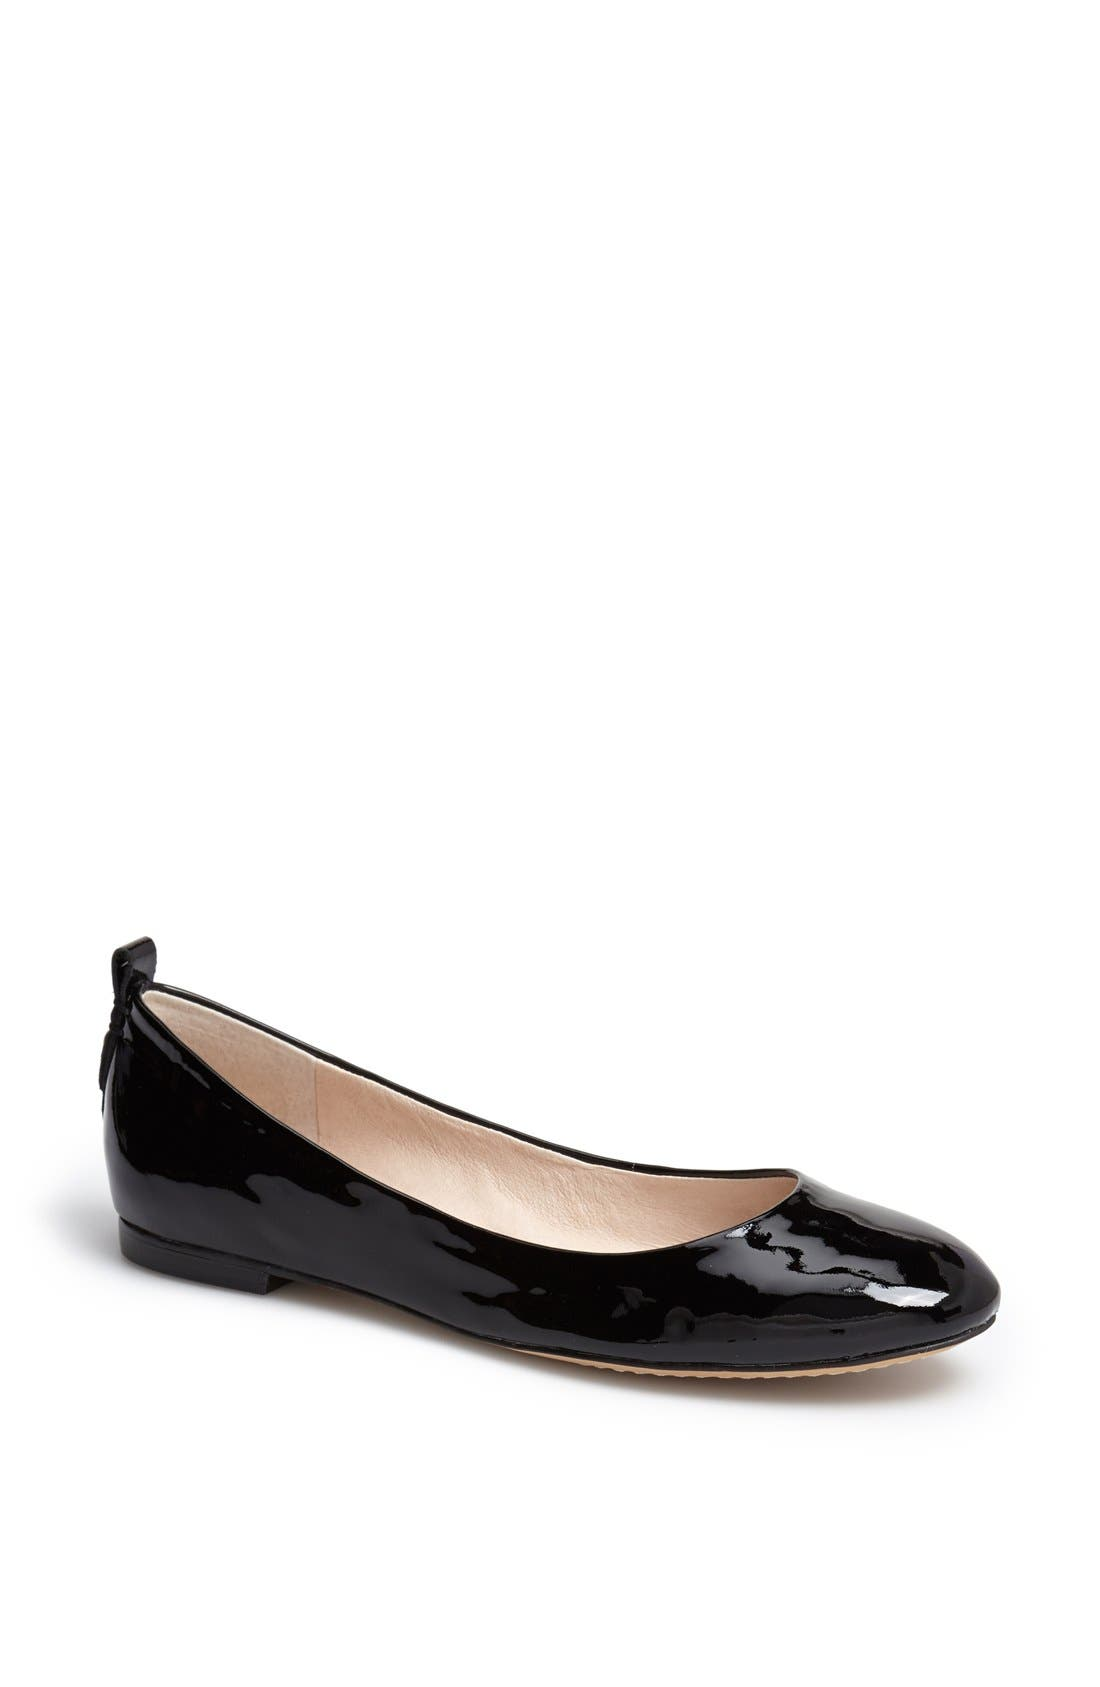 Main Image - Vince Camuto 'Benningly' Patent Leather Ballet Flat